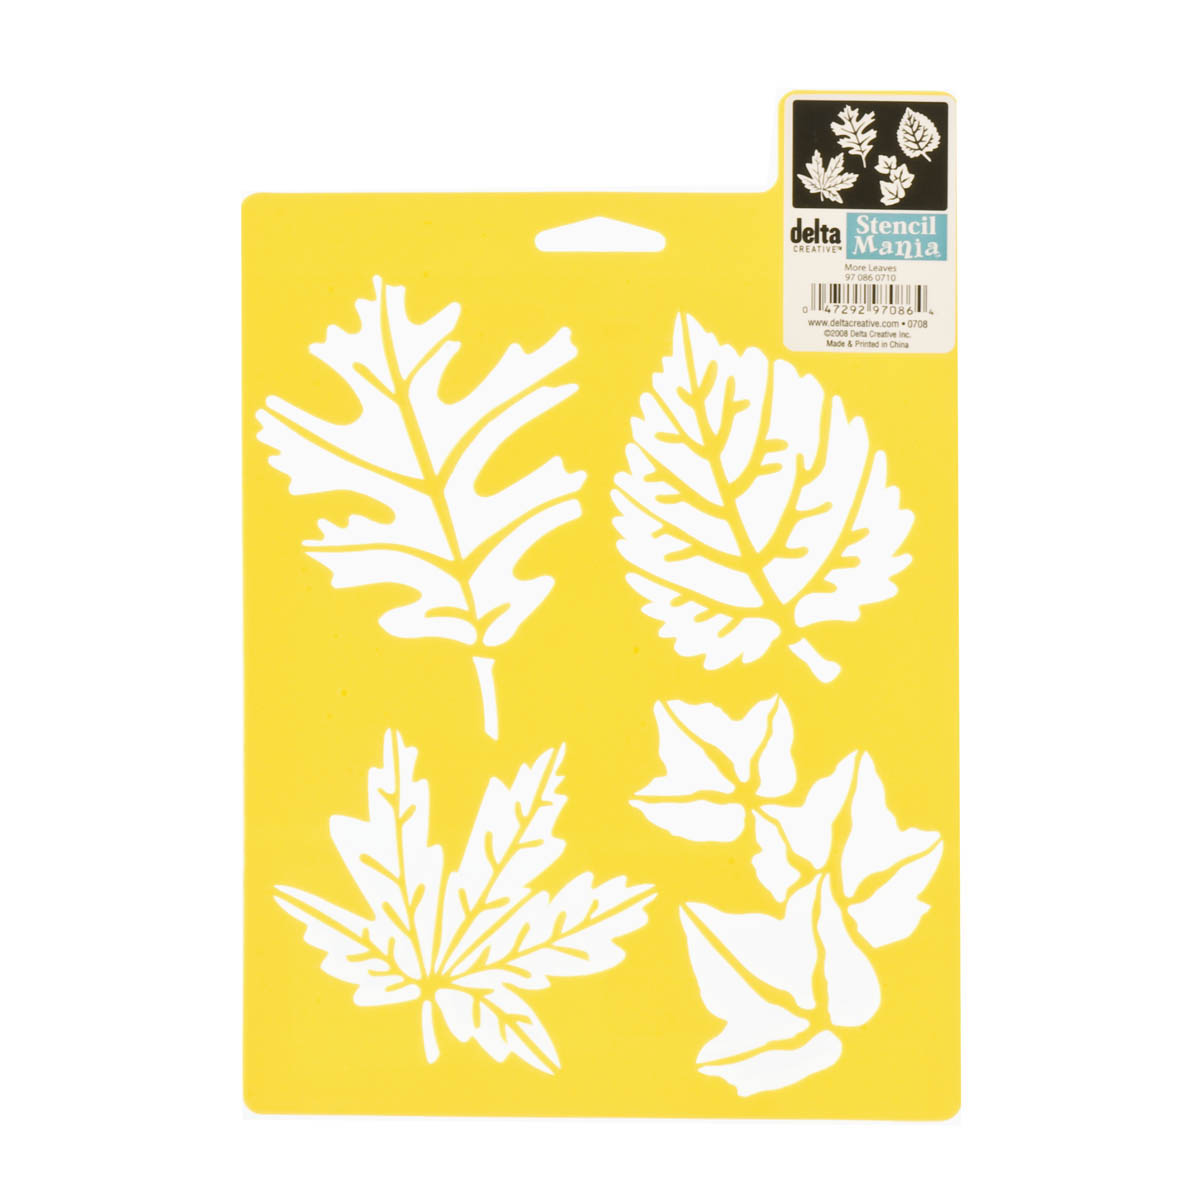 Delta Stencil Mania™ - More Leaves - 970860710